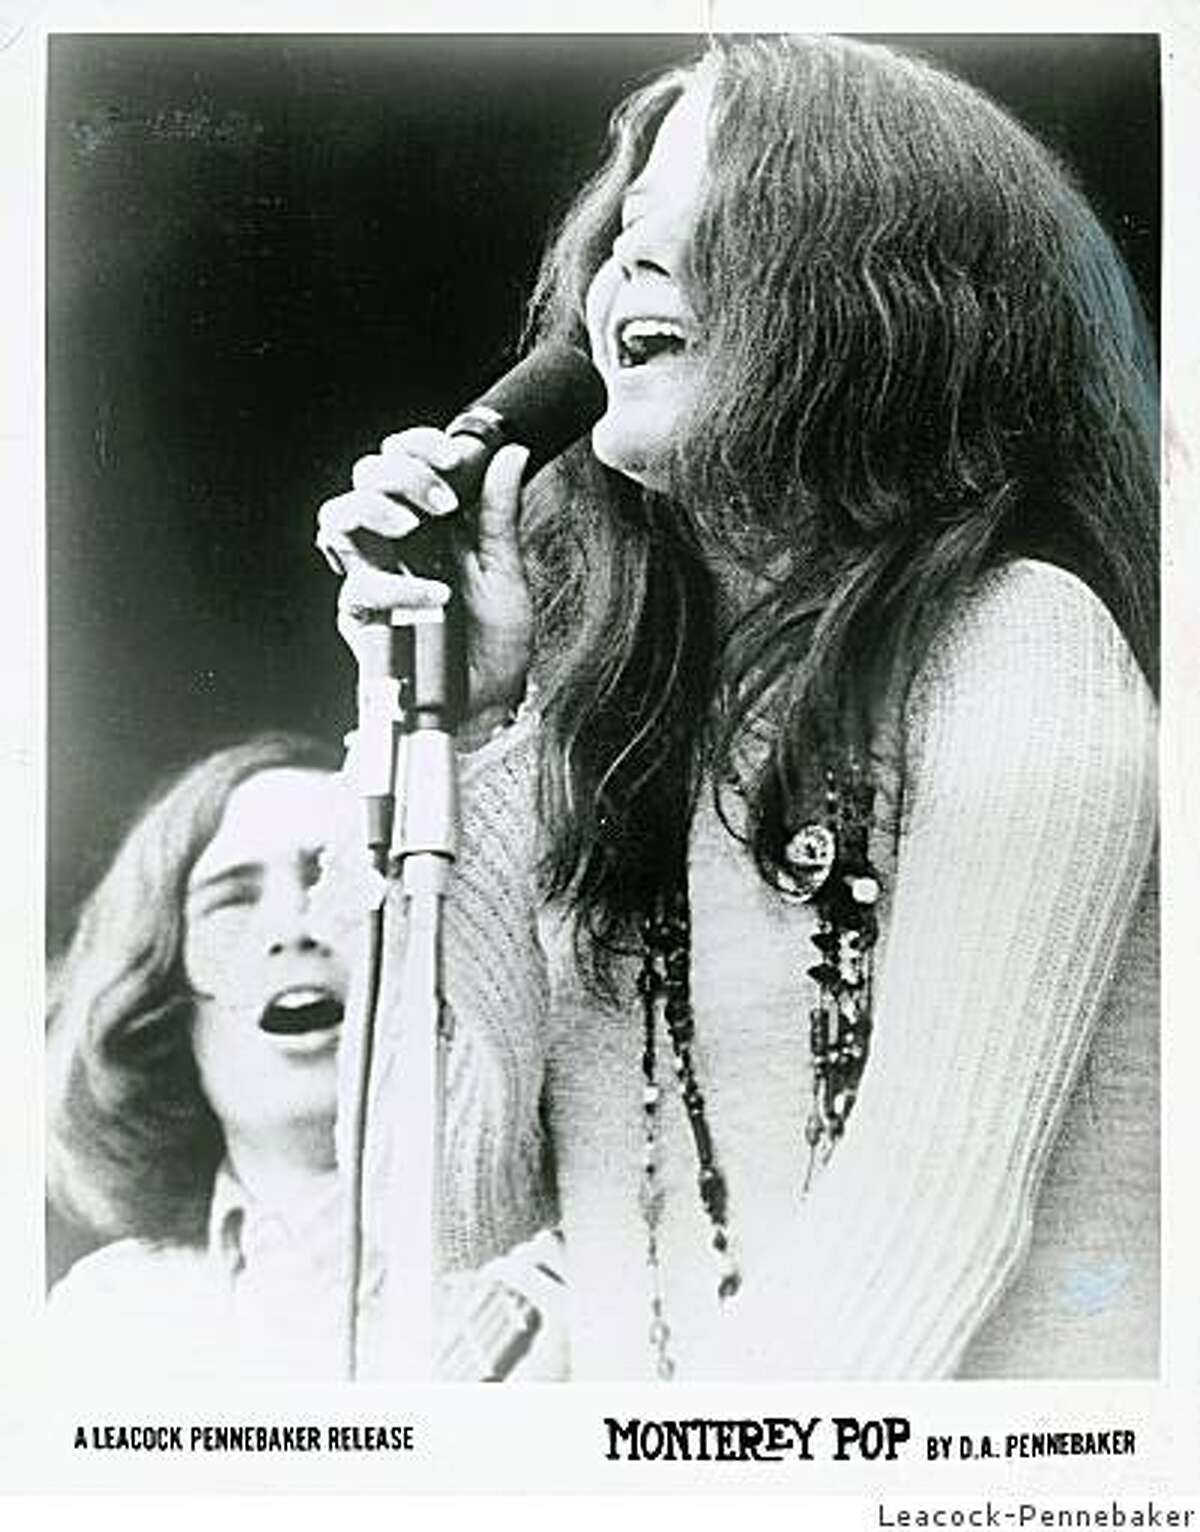 Director D.A. Pennebaker has had more than 50 years of experience working behind the scenes to bring visions of music to the masses. His 1968 portrayal of the Monterey International Pop Music Festival, Monterey Pop, features Janis Joplin.